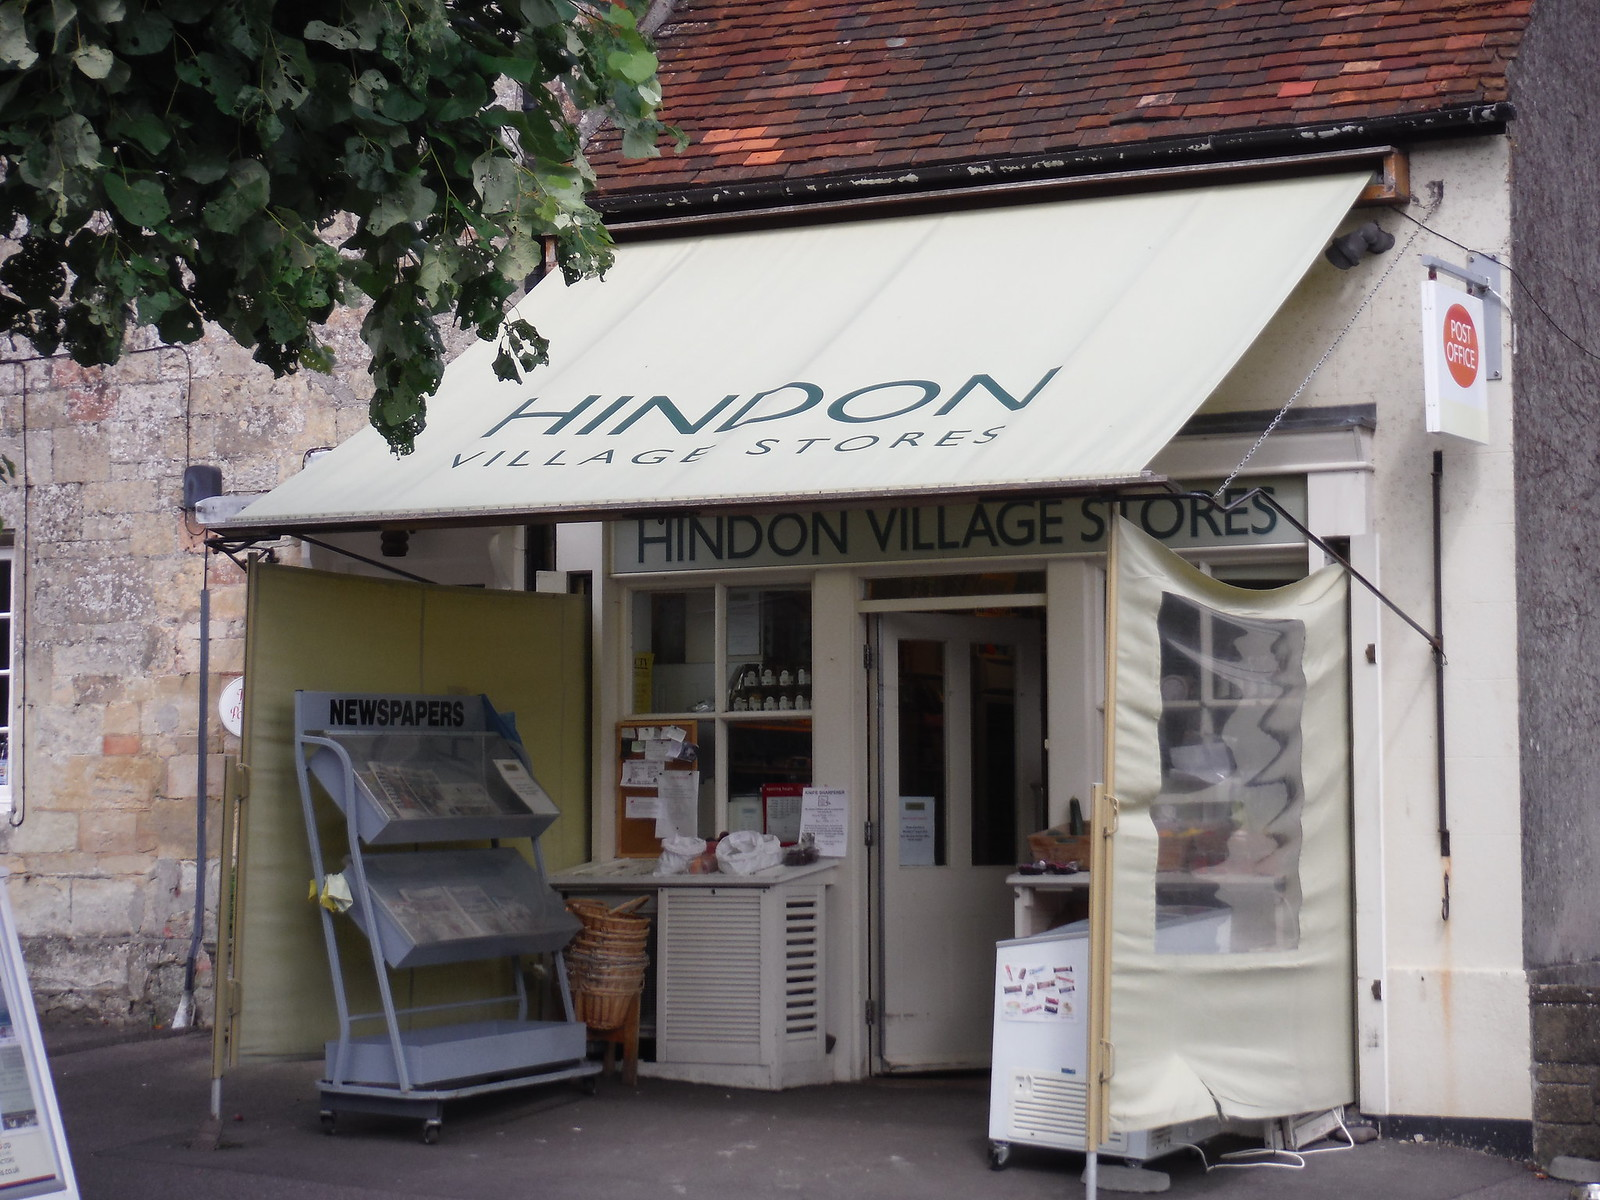 Hindon Village Stores SWC Walk 248 Tisbury Circular via Hindon